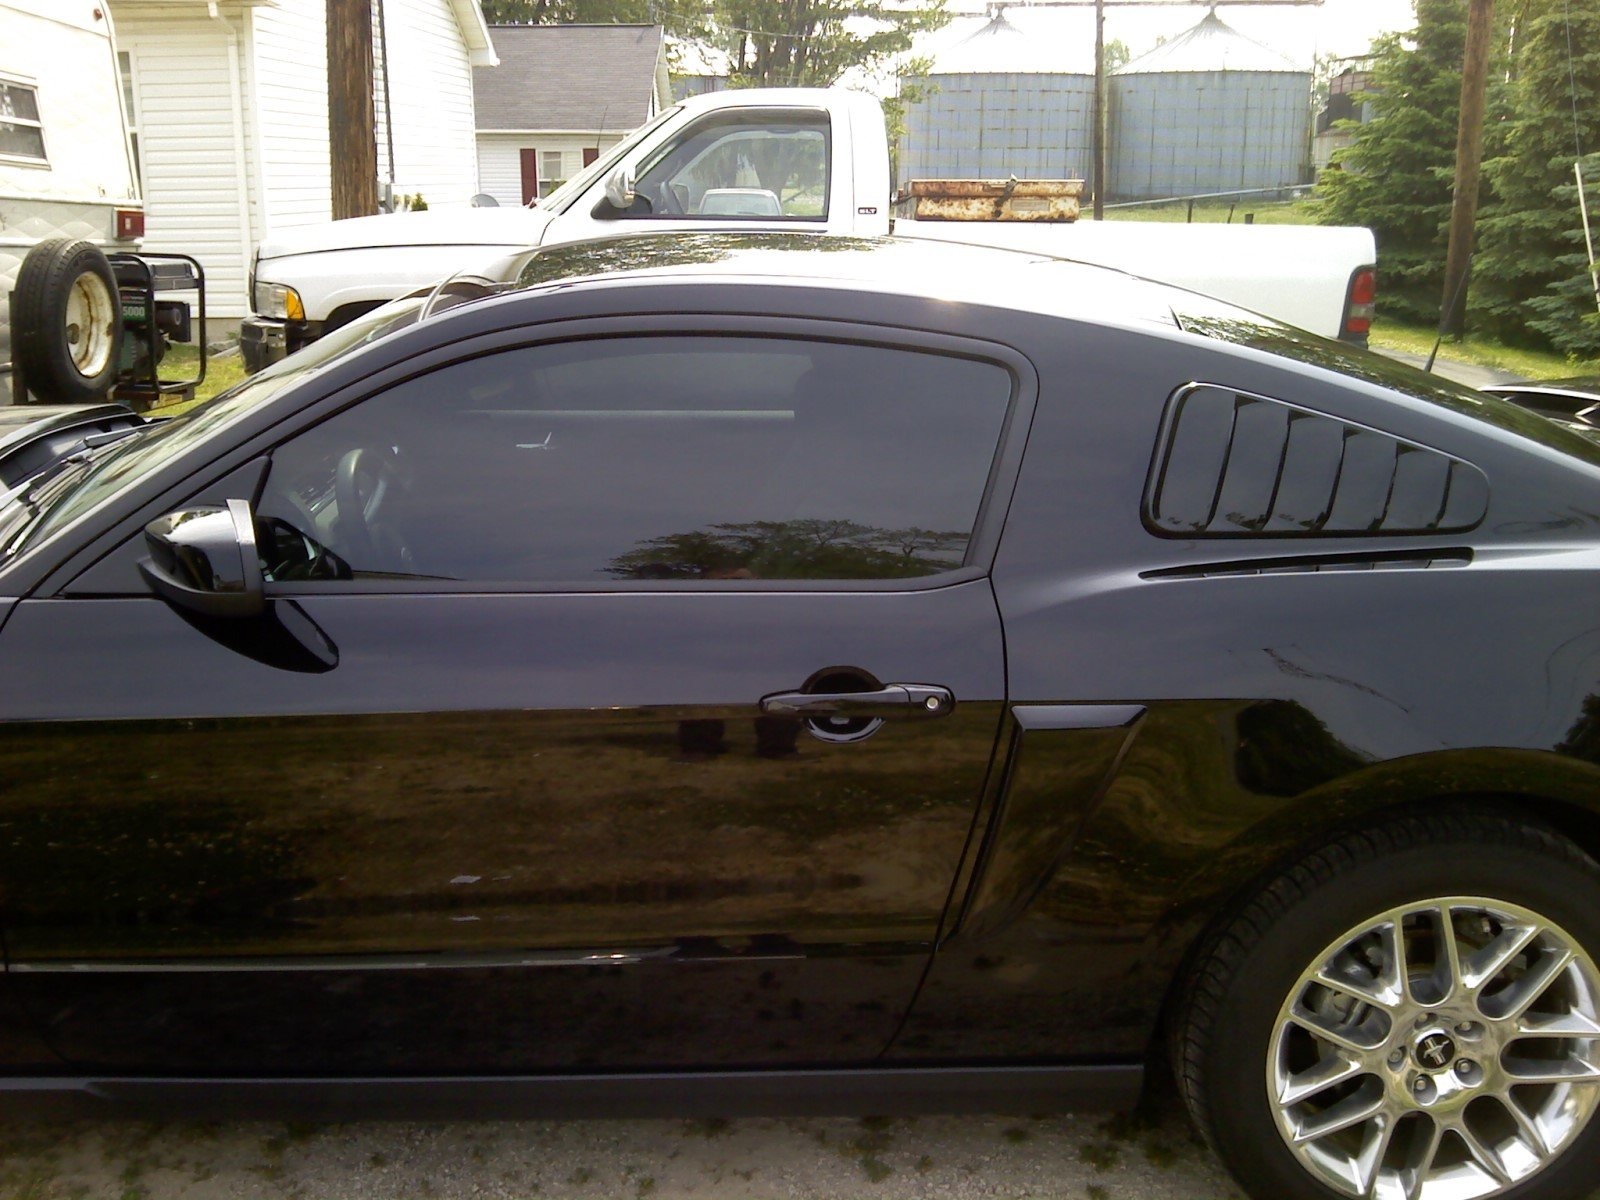 Window Tint Page 5 Ford Mustang Forum 2012 Focus Tinted Windows Click Image For Larger Version Name 0525021033 Views 16114 Size 3595